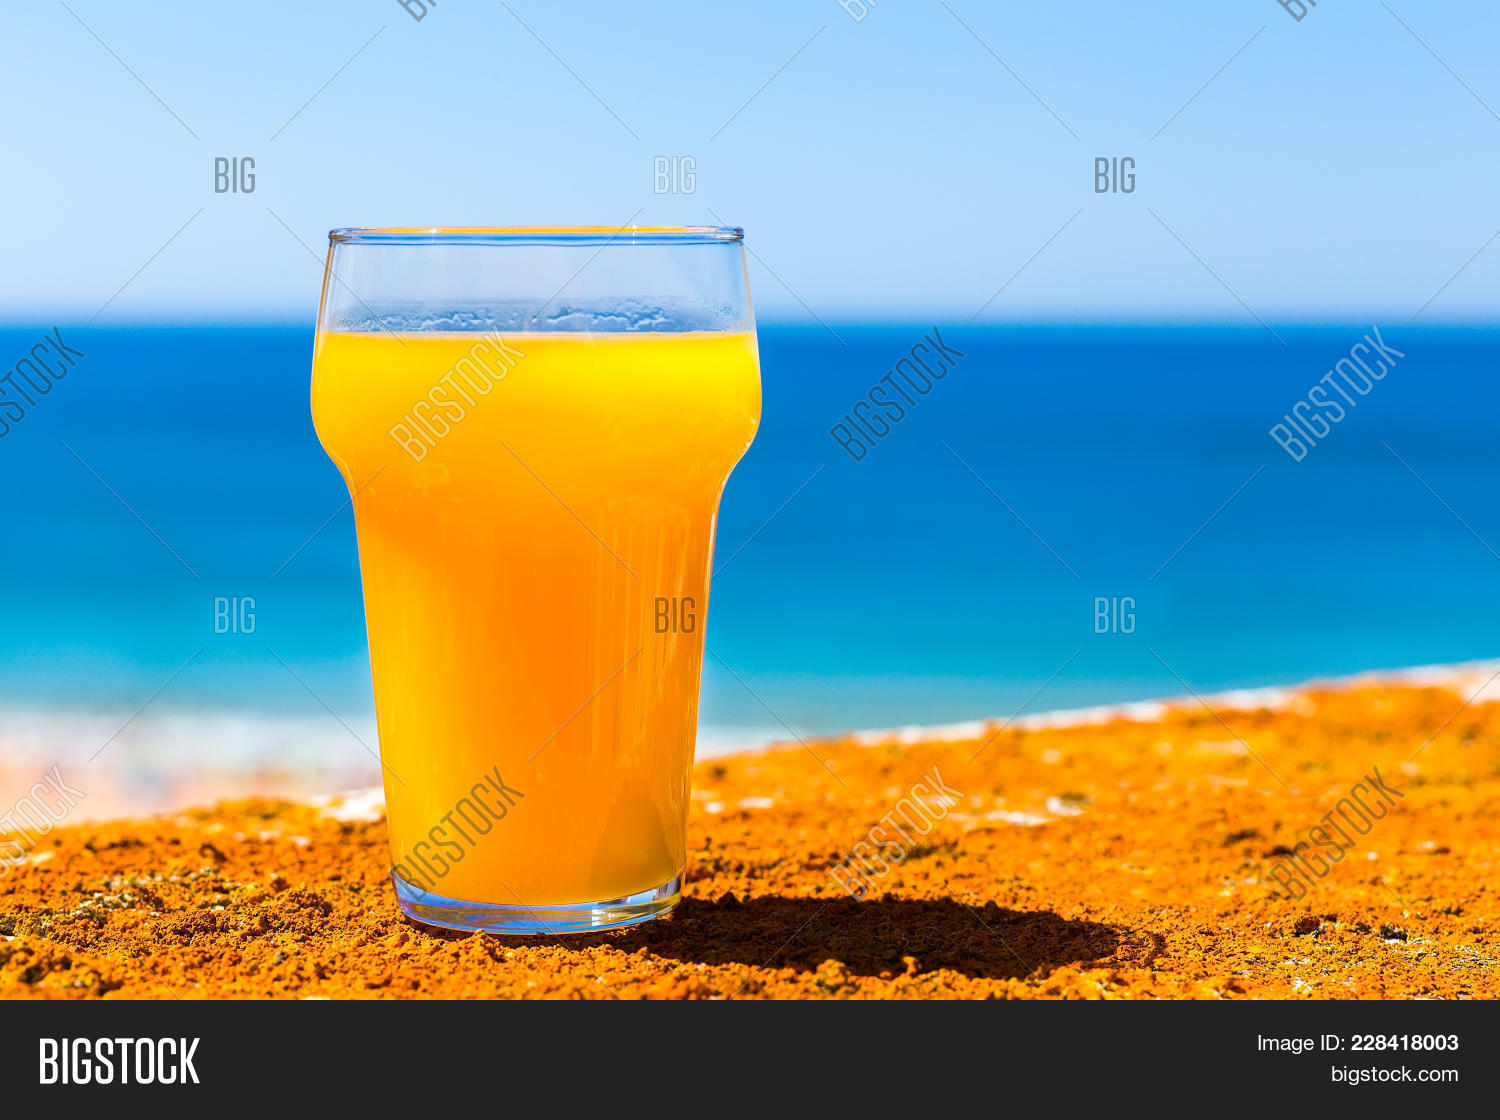 Glass Filled Orange Image & Photo (Free Trial) | Bigstock